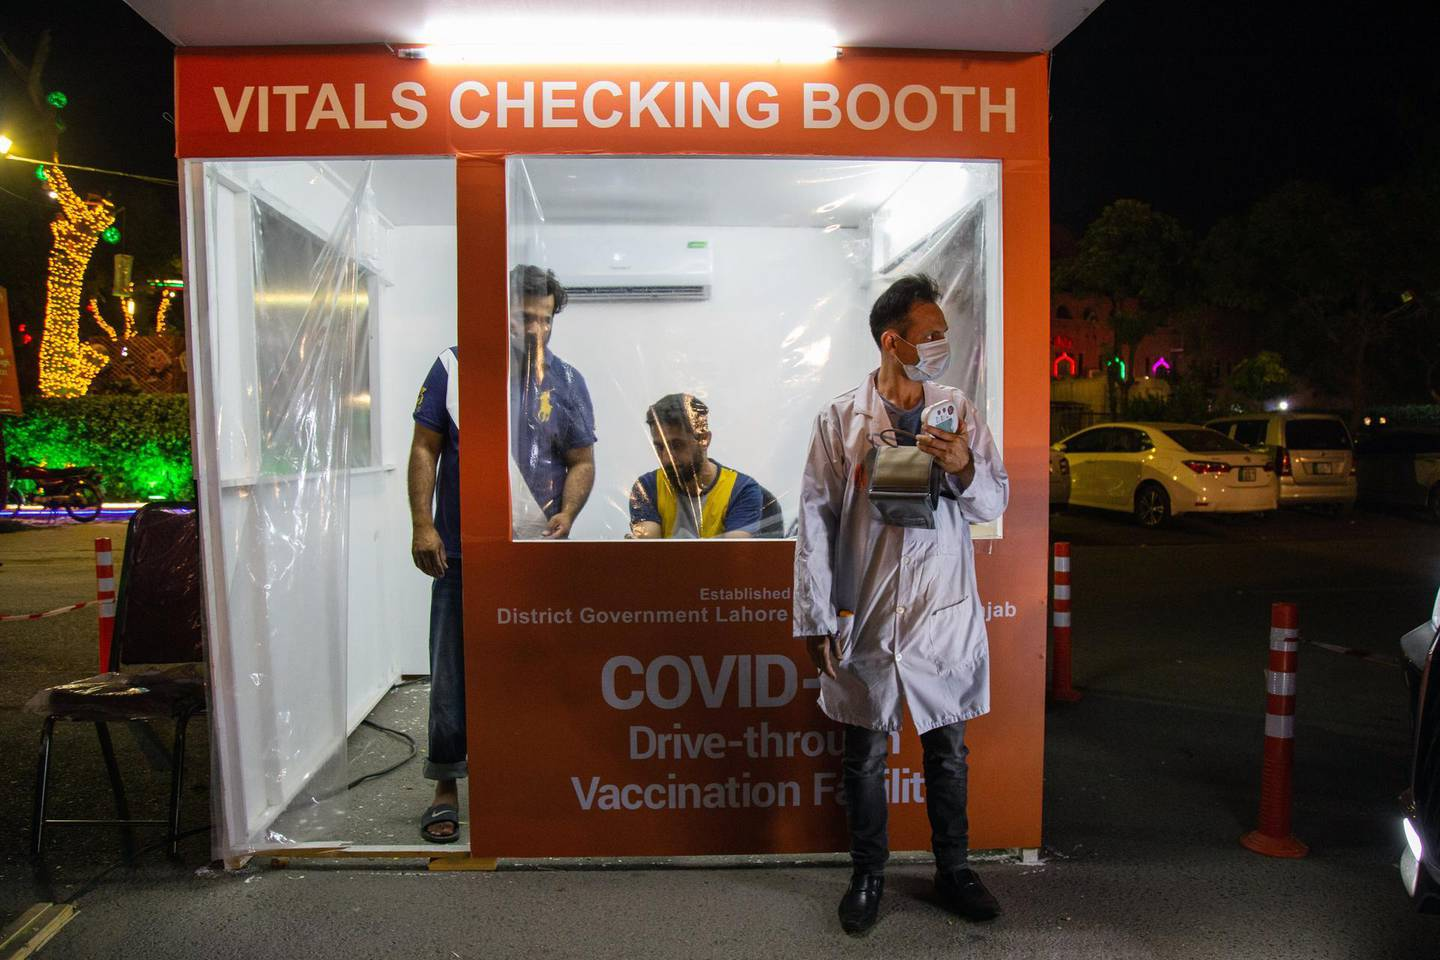 A vitals checking booth at a drive-through vaccination center at Qaddafi Stadium in Lahore, Pakistan, on Thursday, June 10, 2021. Pakistan's Finance MinisterShaukat Tarinwill on Friday find himself walking the fine line between spending big to sustain an economic recovery and keeping the budget deficit in check as the nation emerges from the worst of the pandemic. Photographer: Betsy Joles/Bloomberg